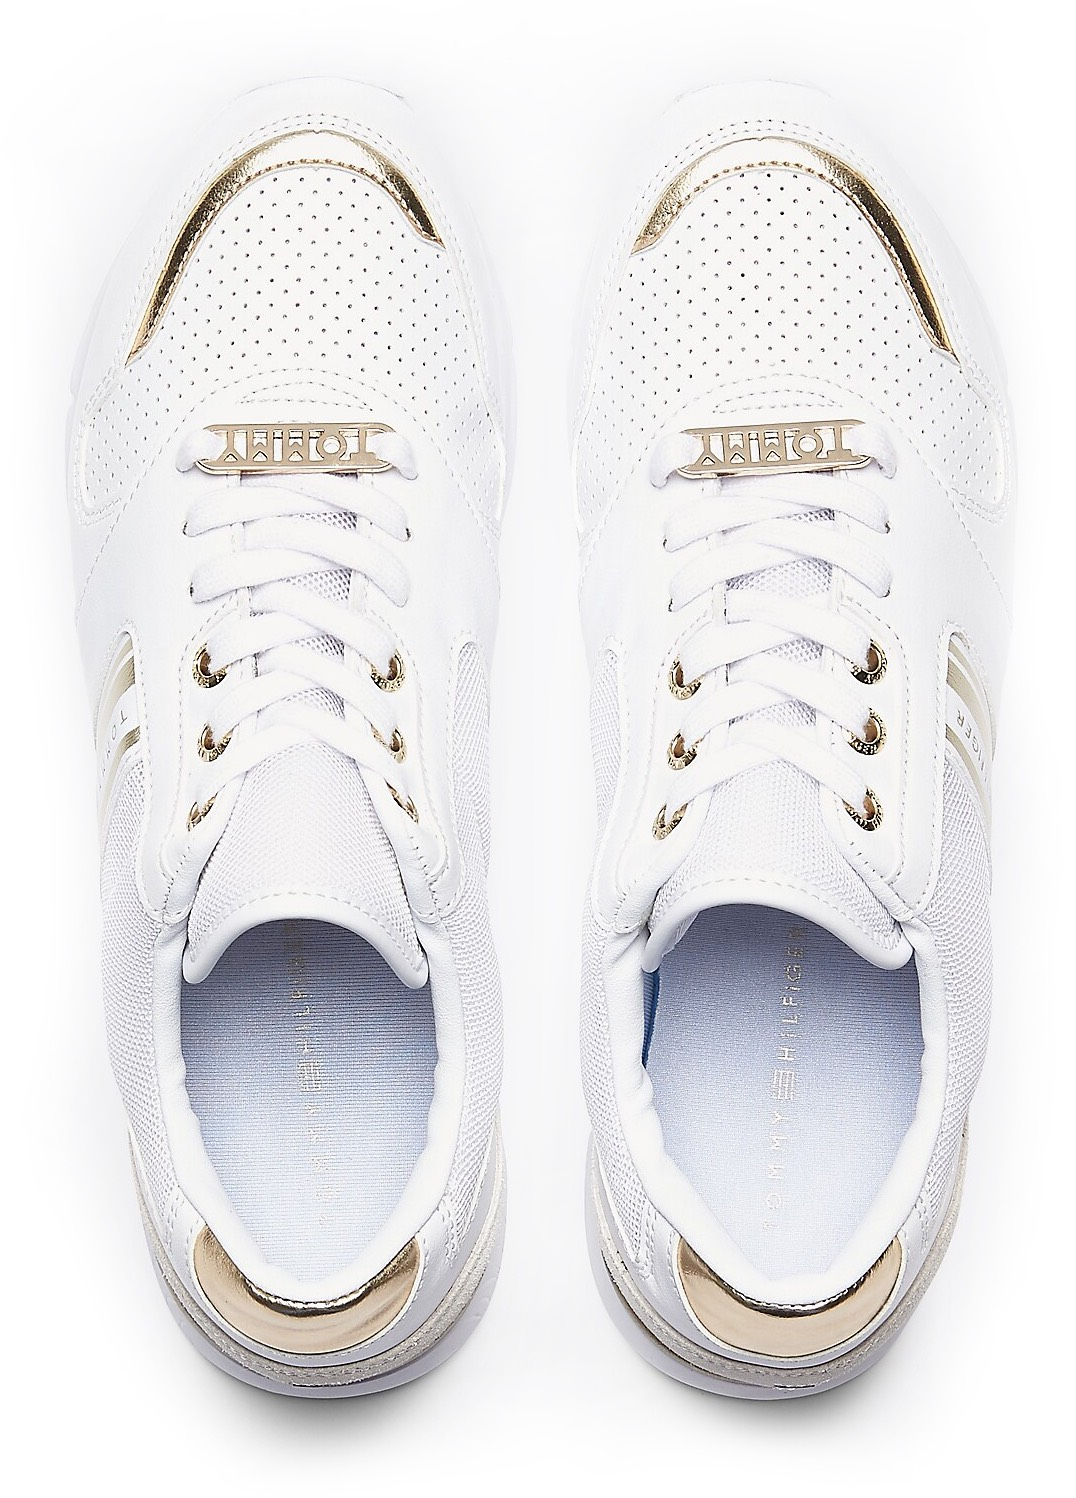 Tommy Hilfiger adidasi albi Metallic Lightweight Sneaker White/Light Gold